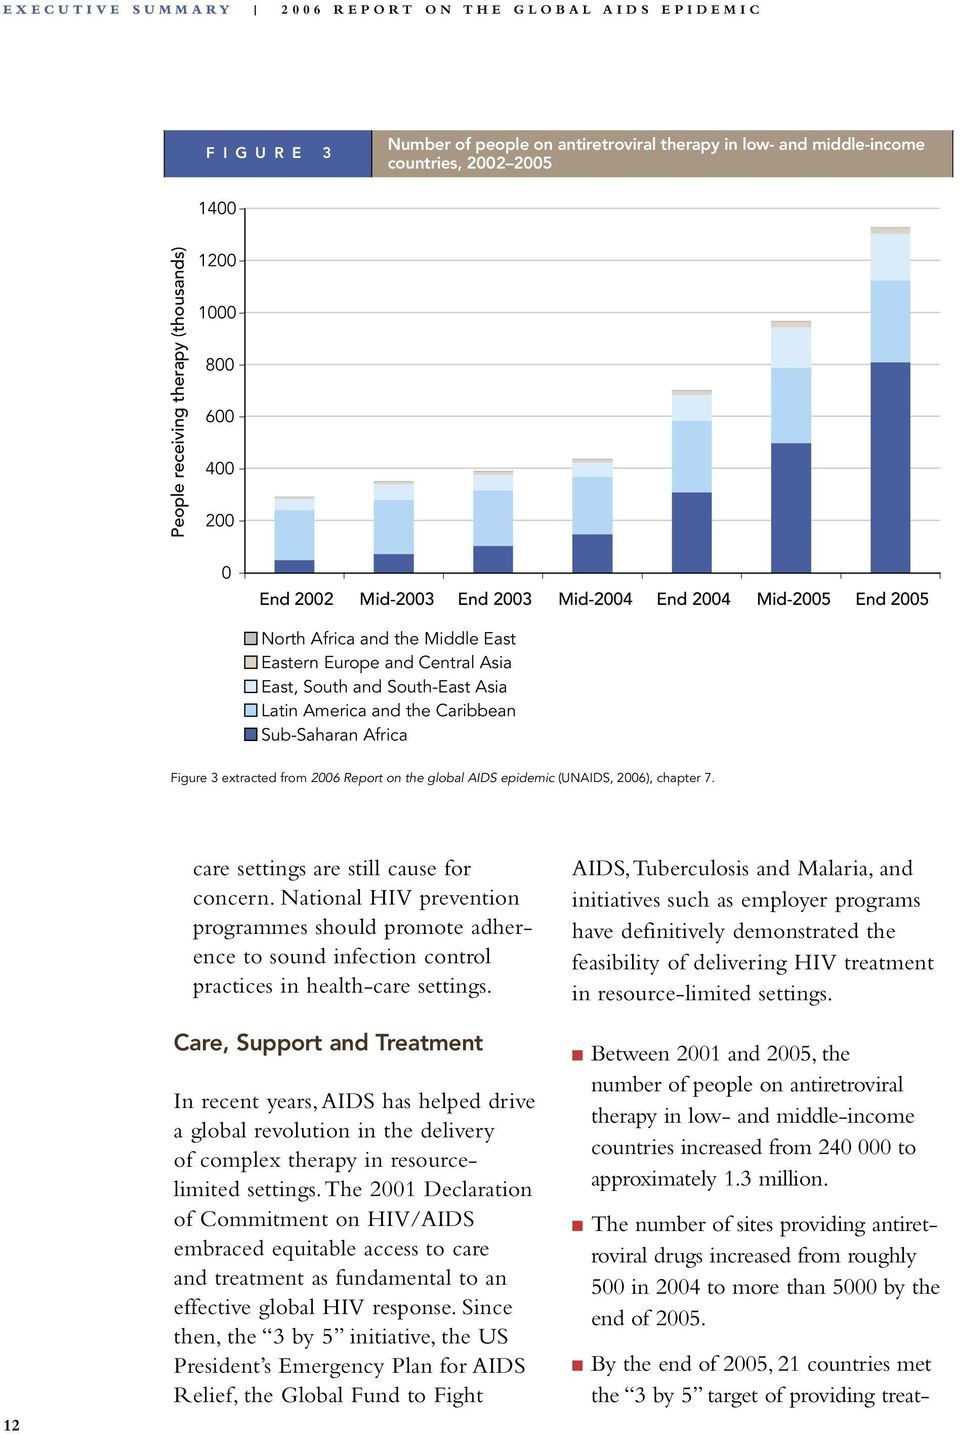 Asia East, South and South-East Asia Latin America and the Caribbean Sub-Saharan Africa Figure 3 extracted from 2006 Report on the global AIDS epidemic (UNAIDS, 2006), chapter 7.